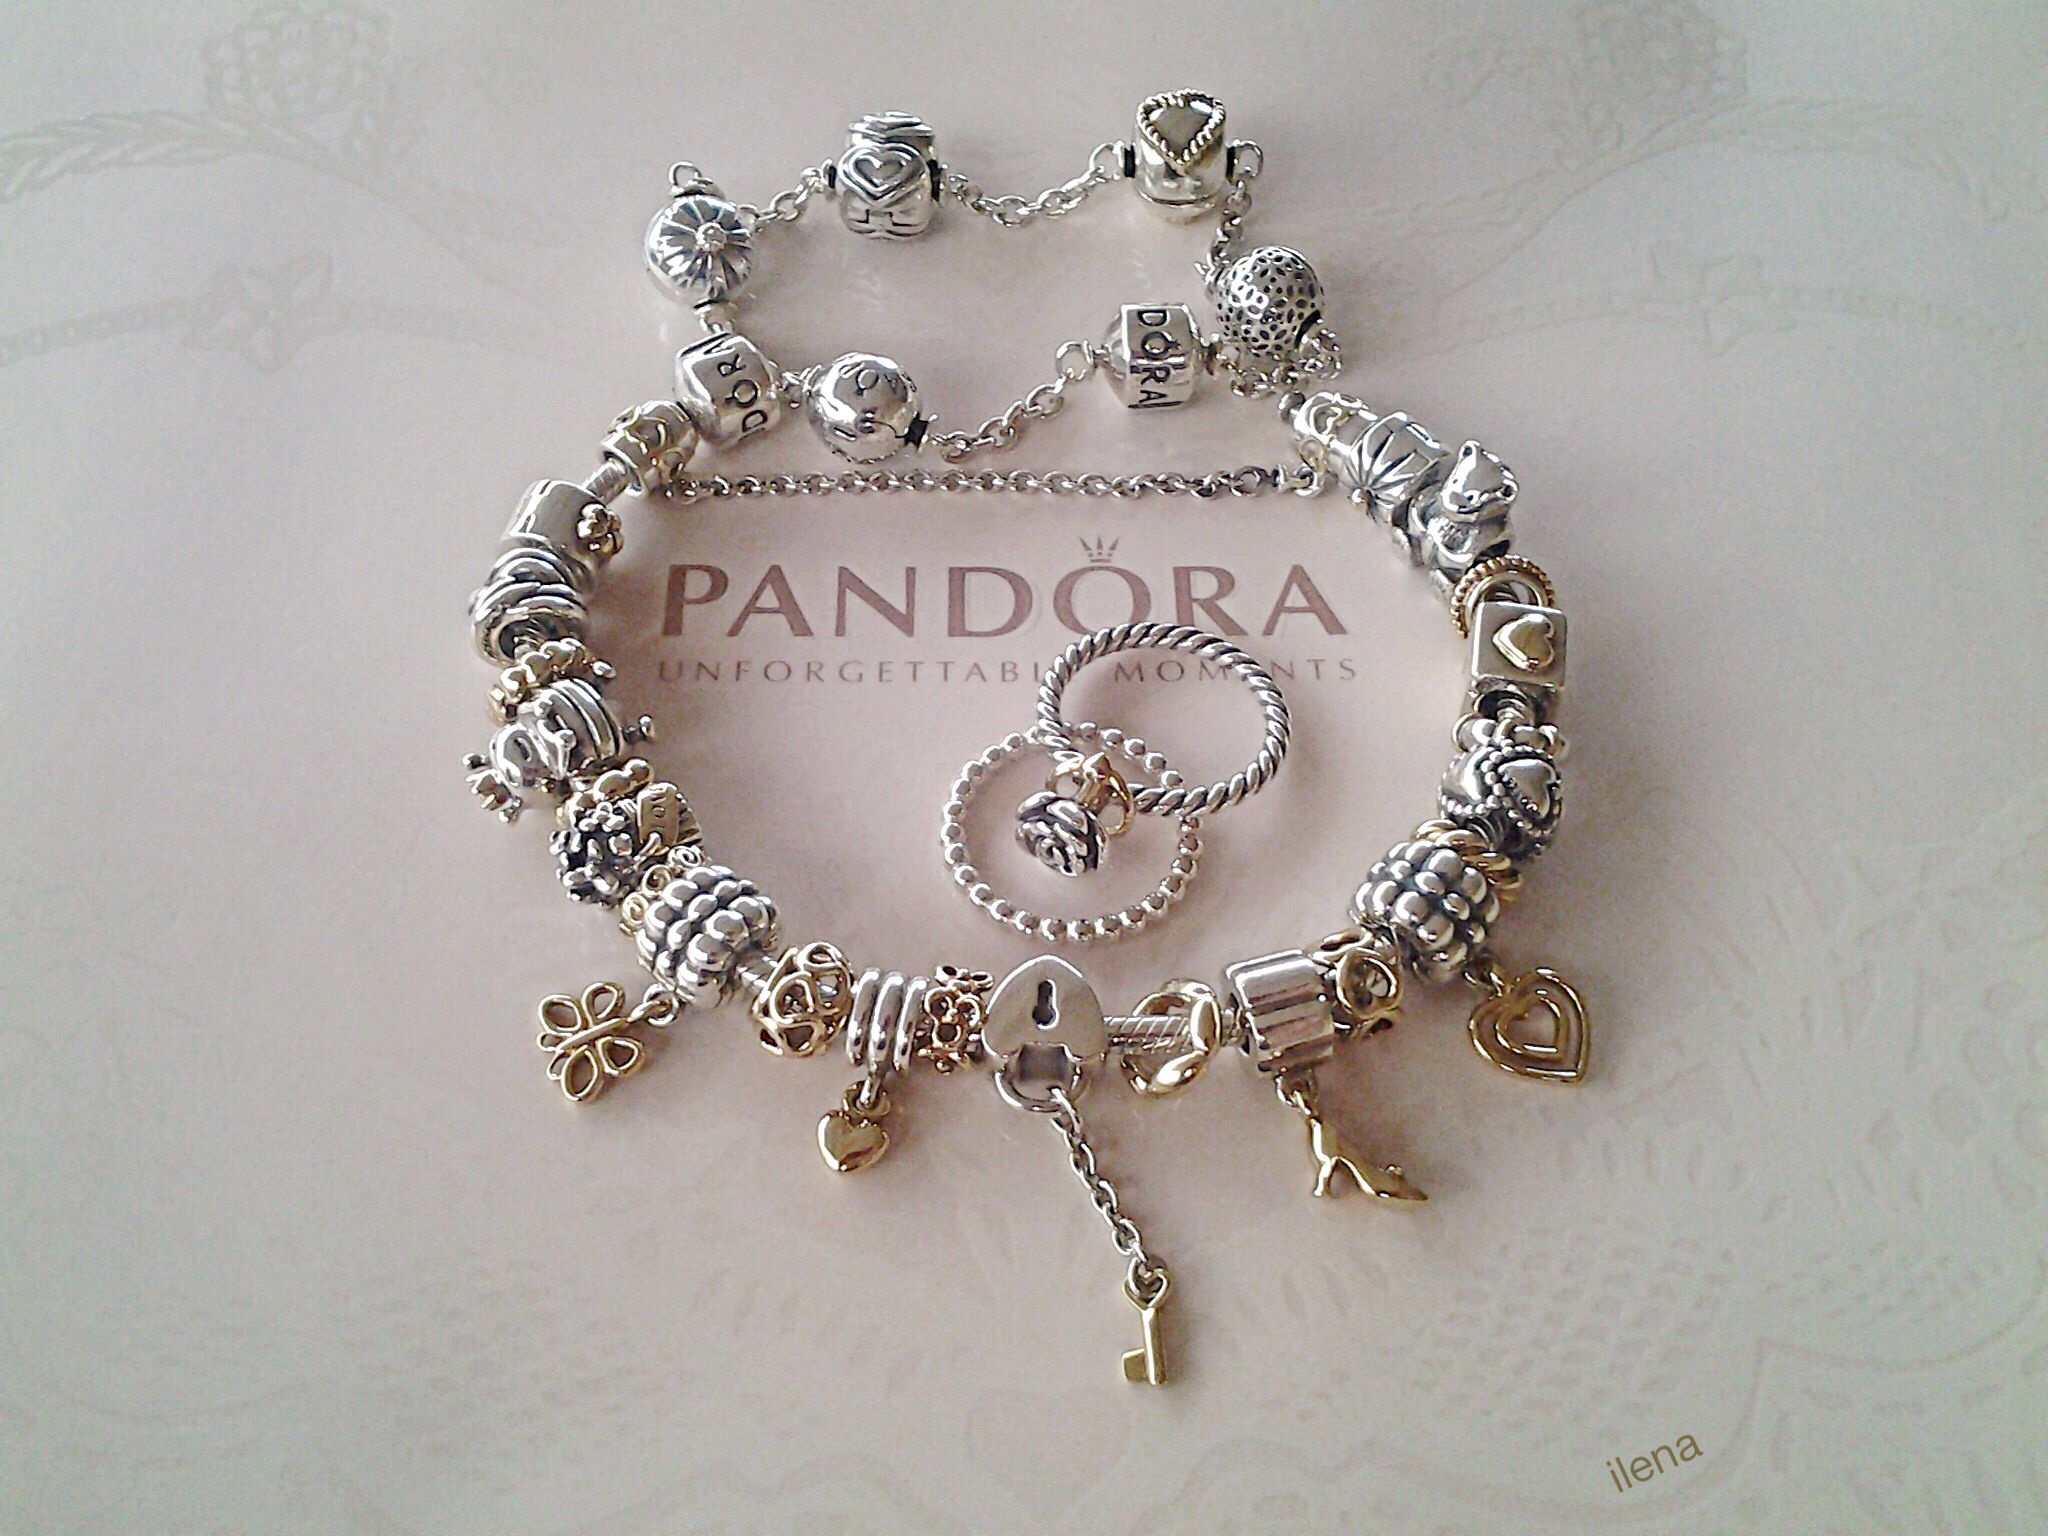 Pandora Charms And Rings In Silver And Gold Gotta Love Them Twotone  Styles!